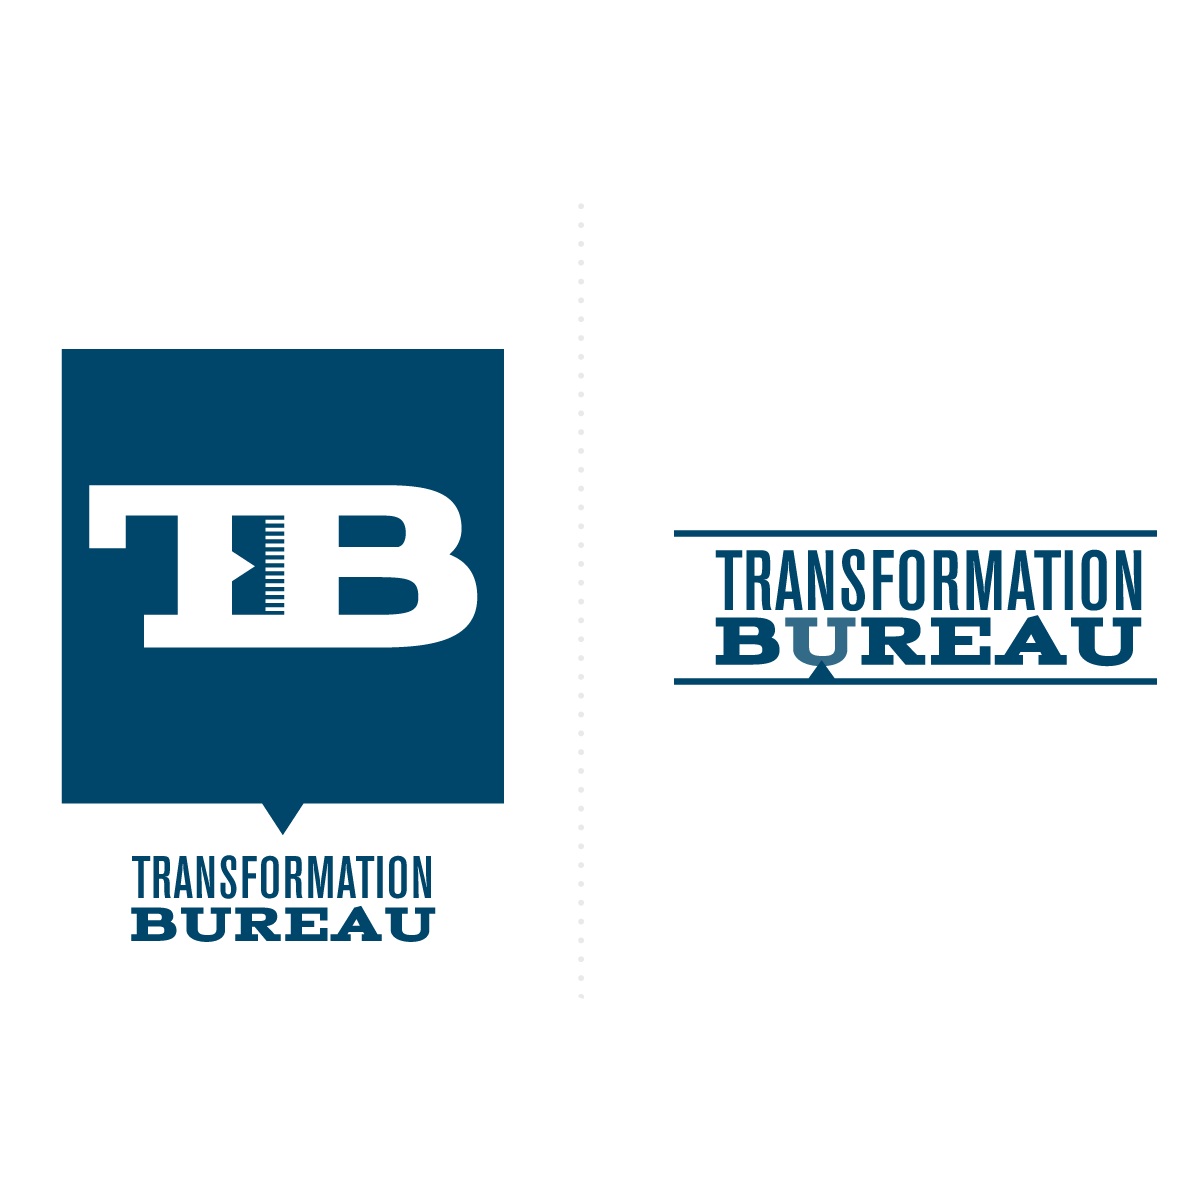 transformation bureau logo wordmark